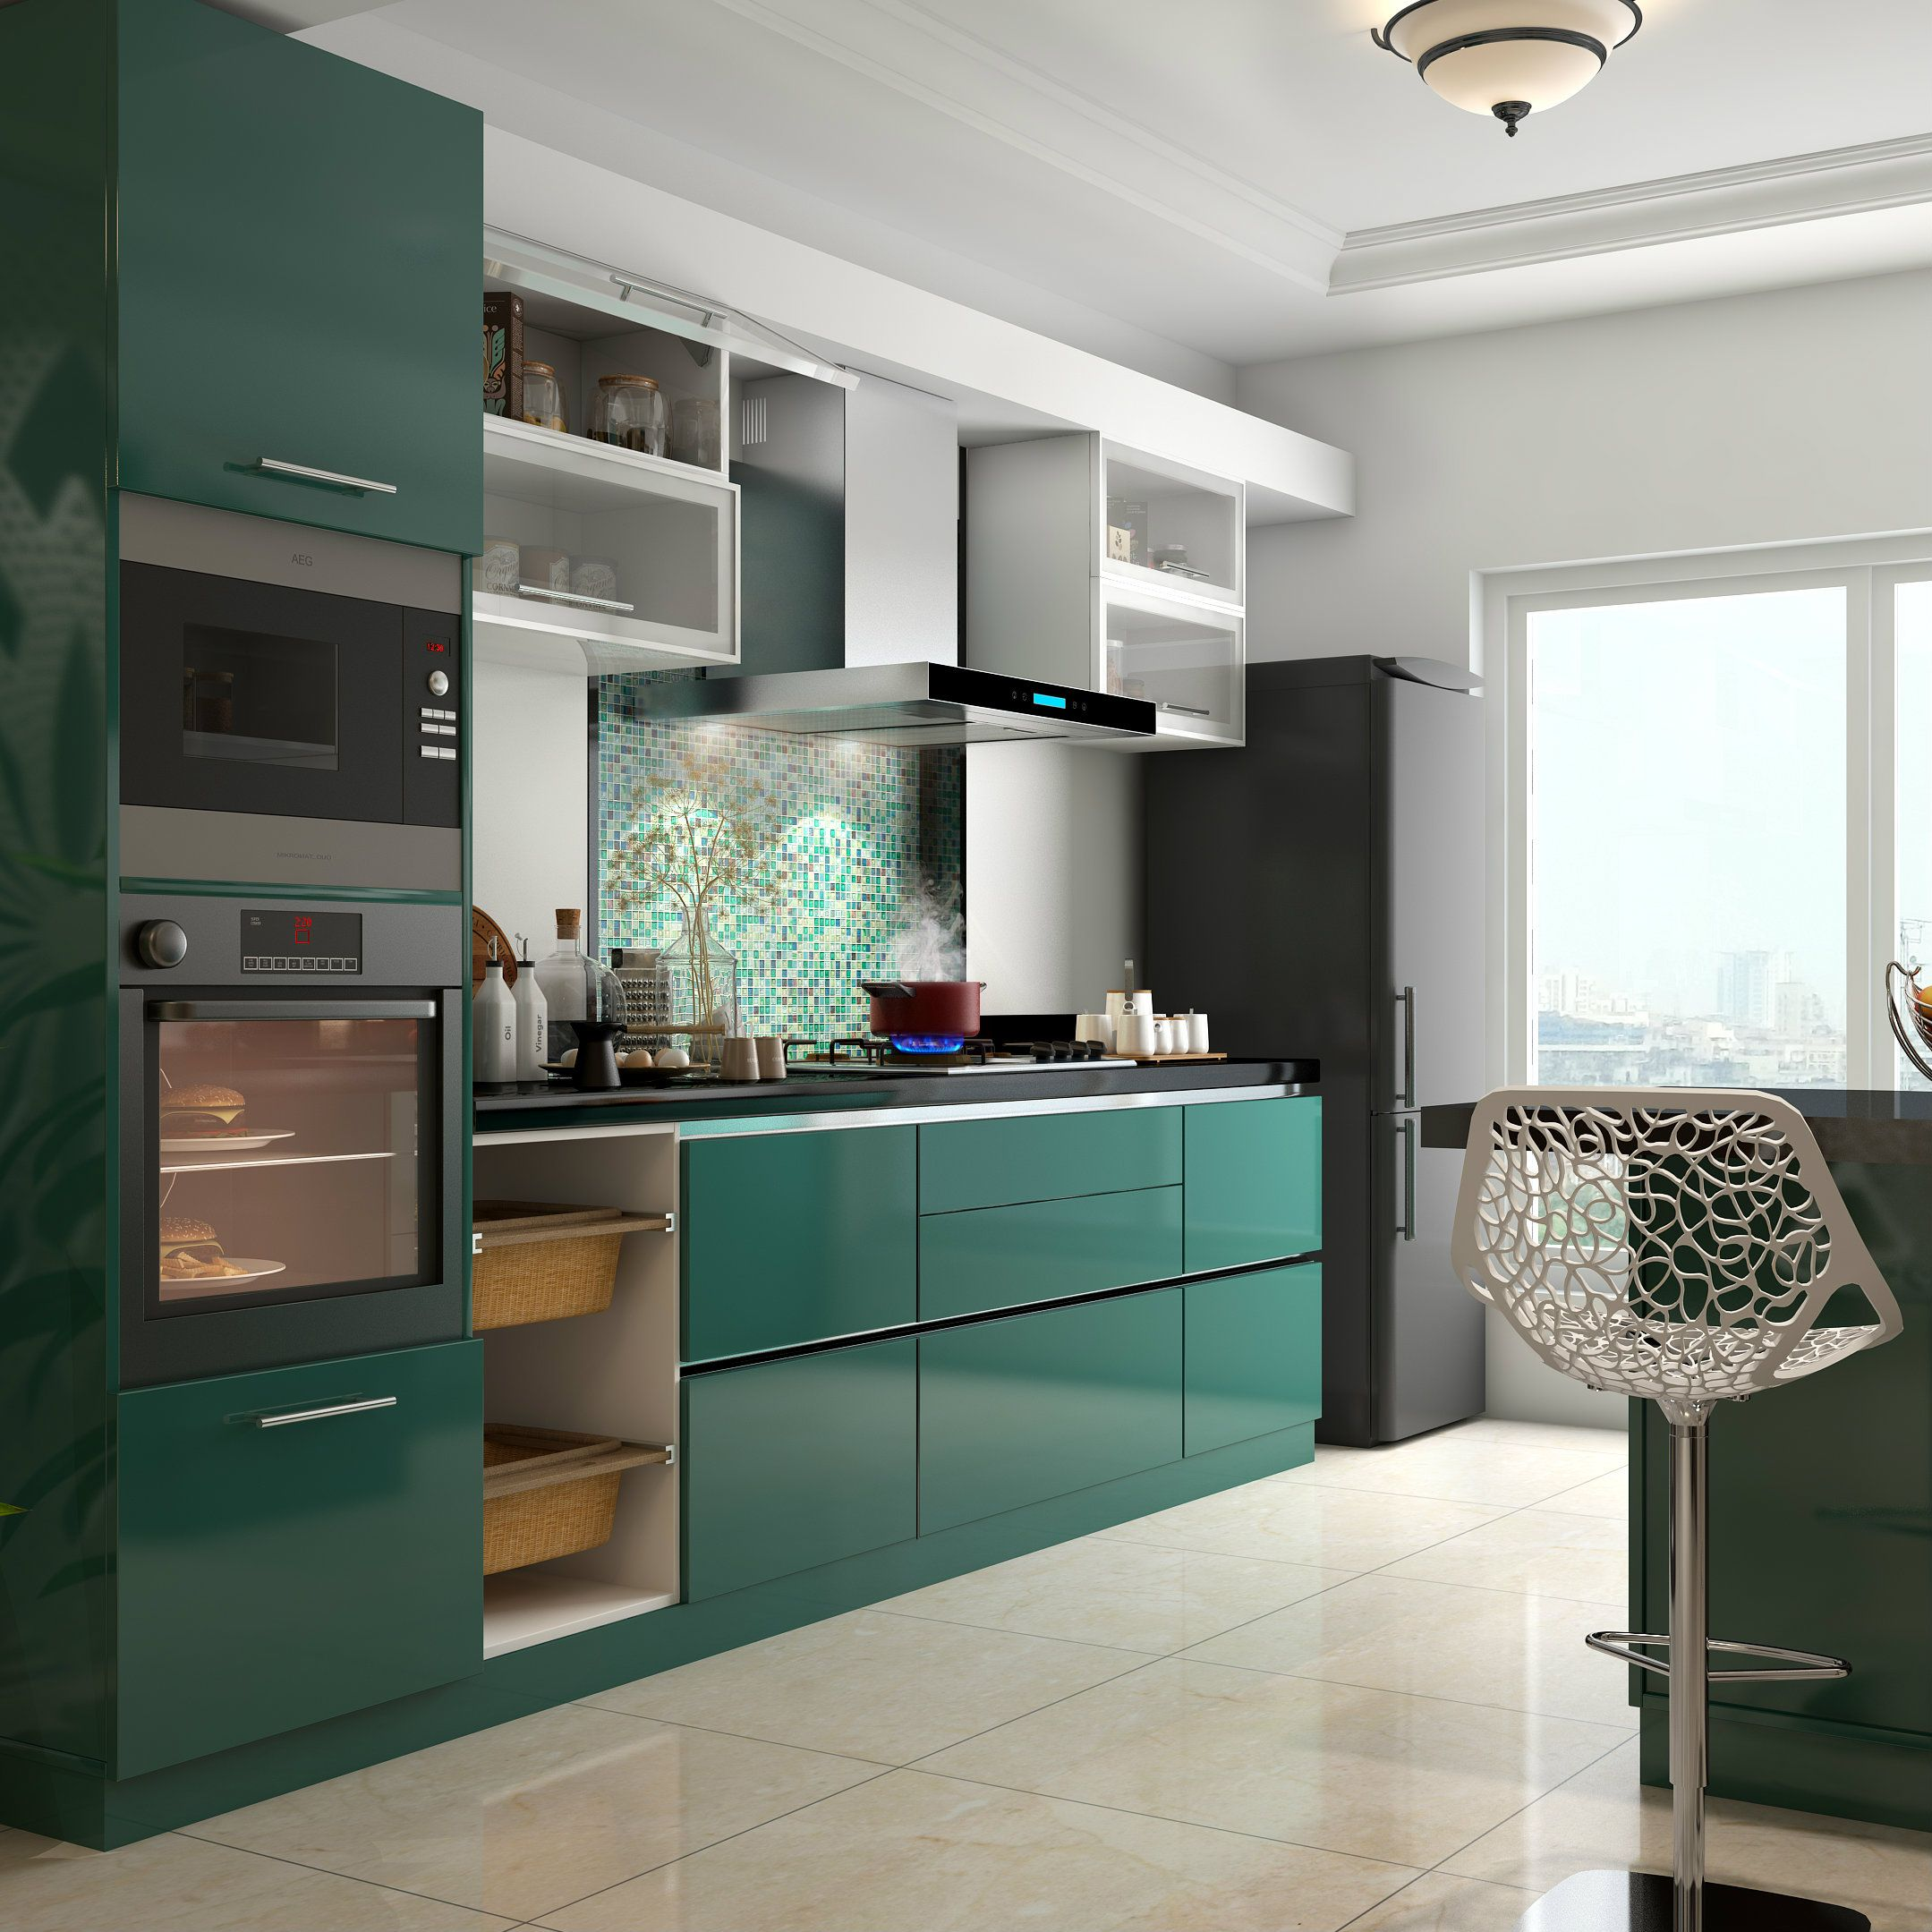 Kitchen Desing How To Build An Outdoor Glossy Green Cabinets Infuse Vitality This Modular